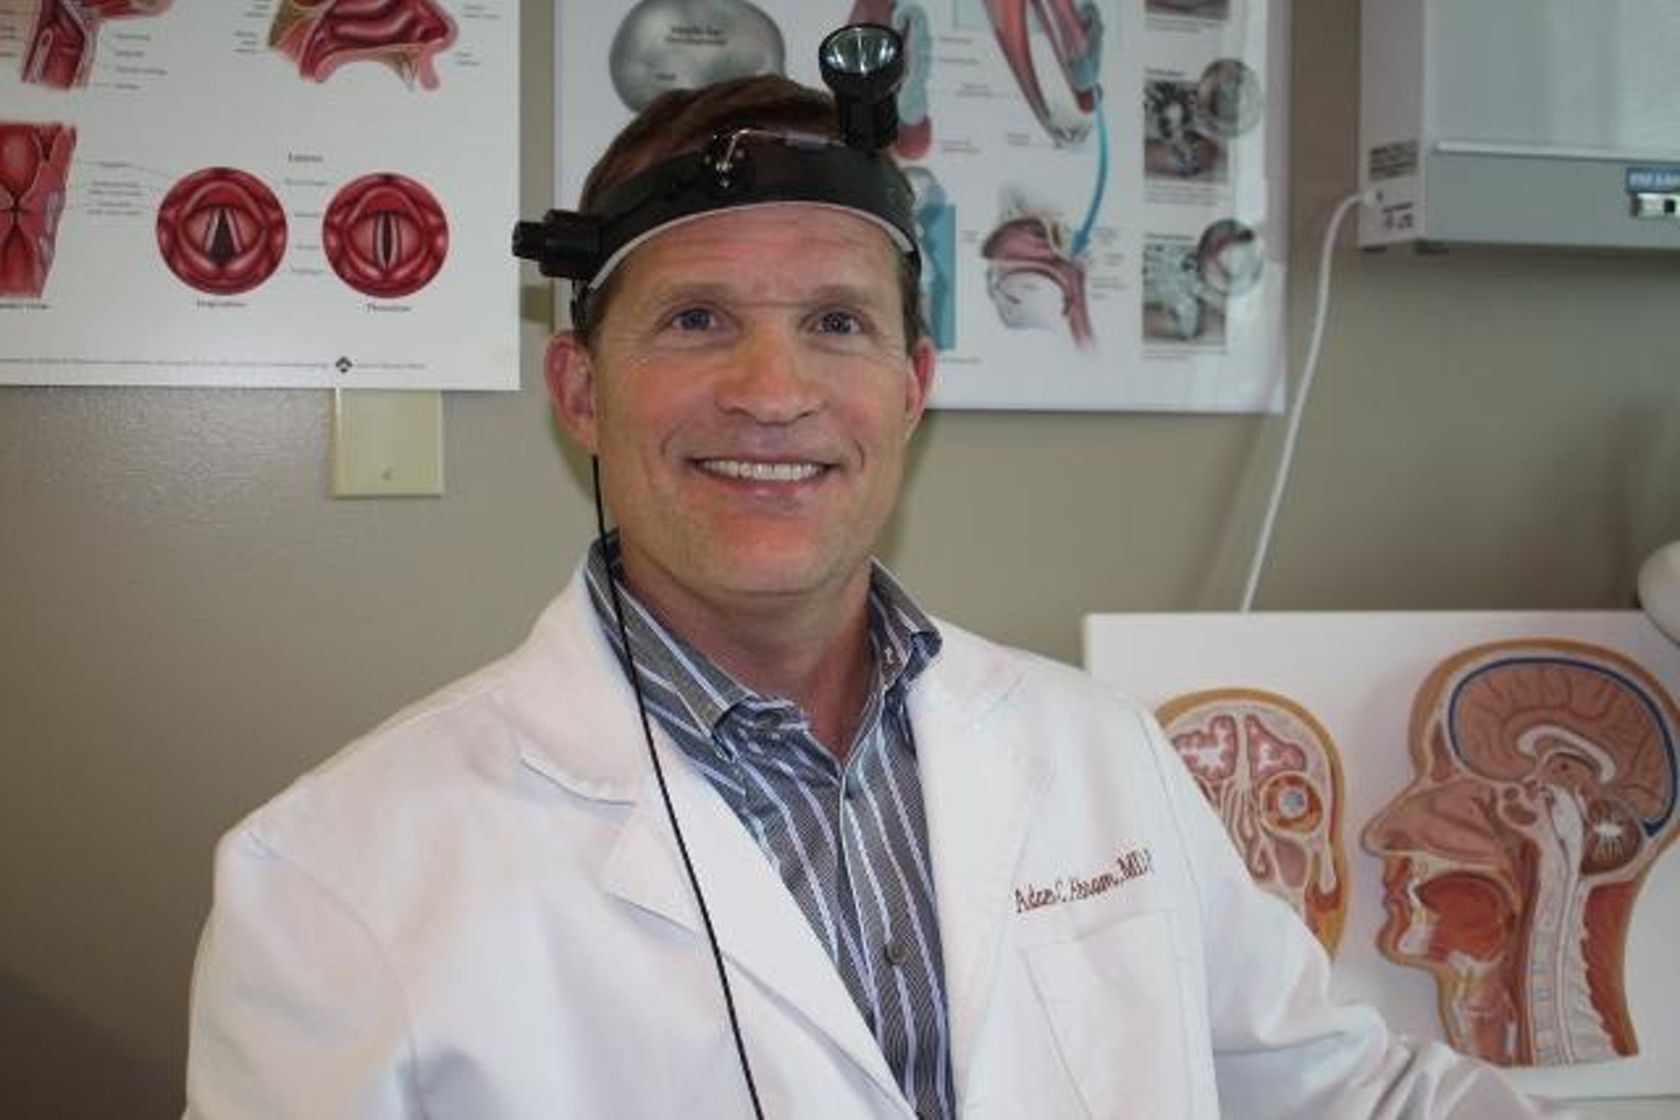 Dr. Adam Abram MD FACS's page on about.me https//about